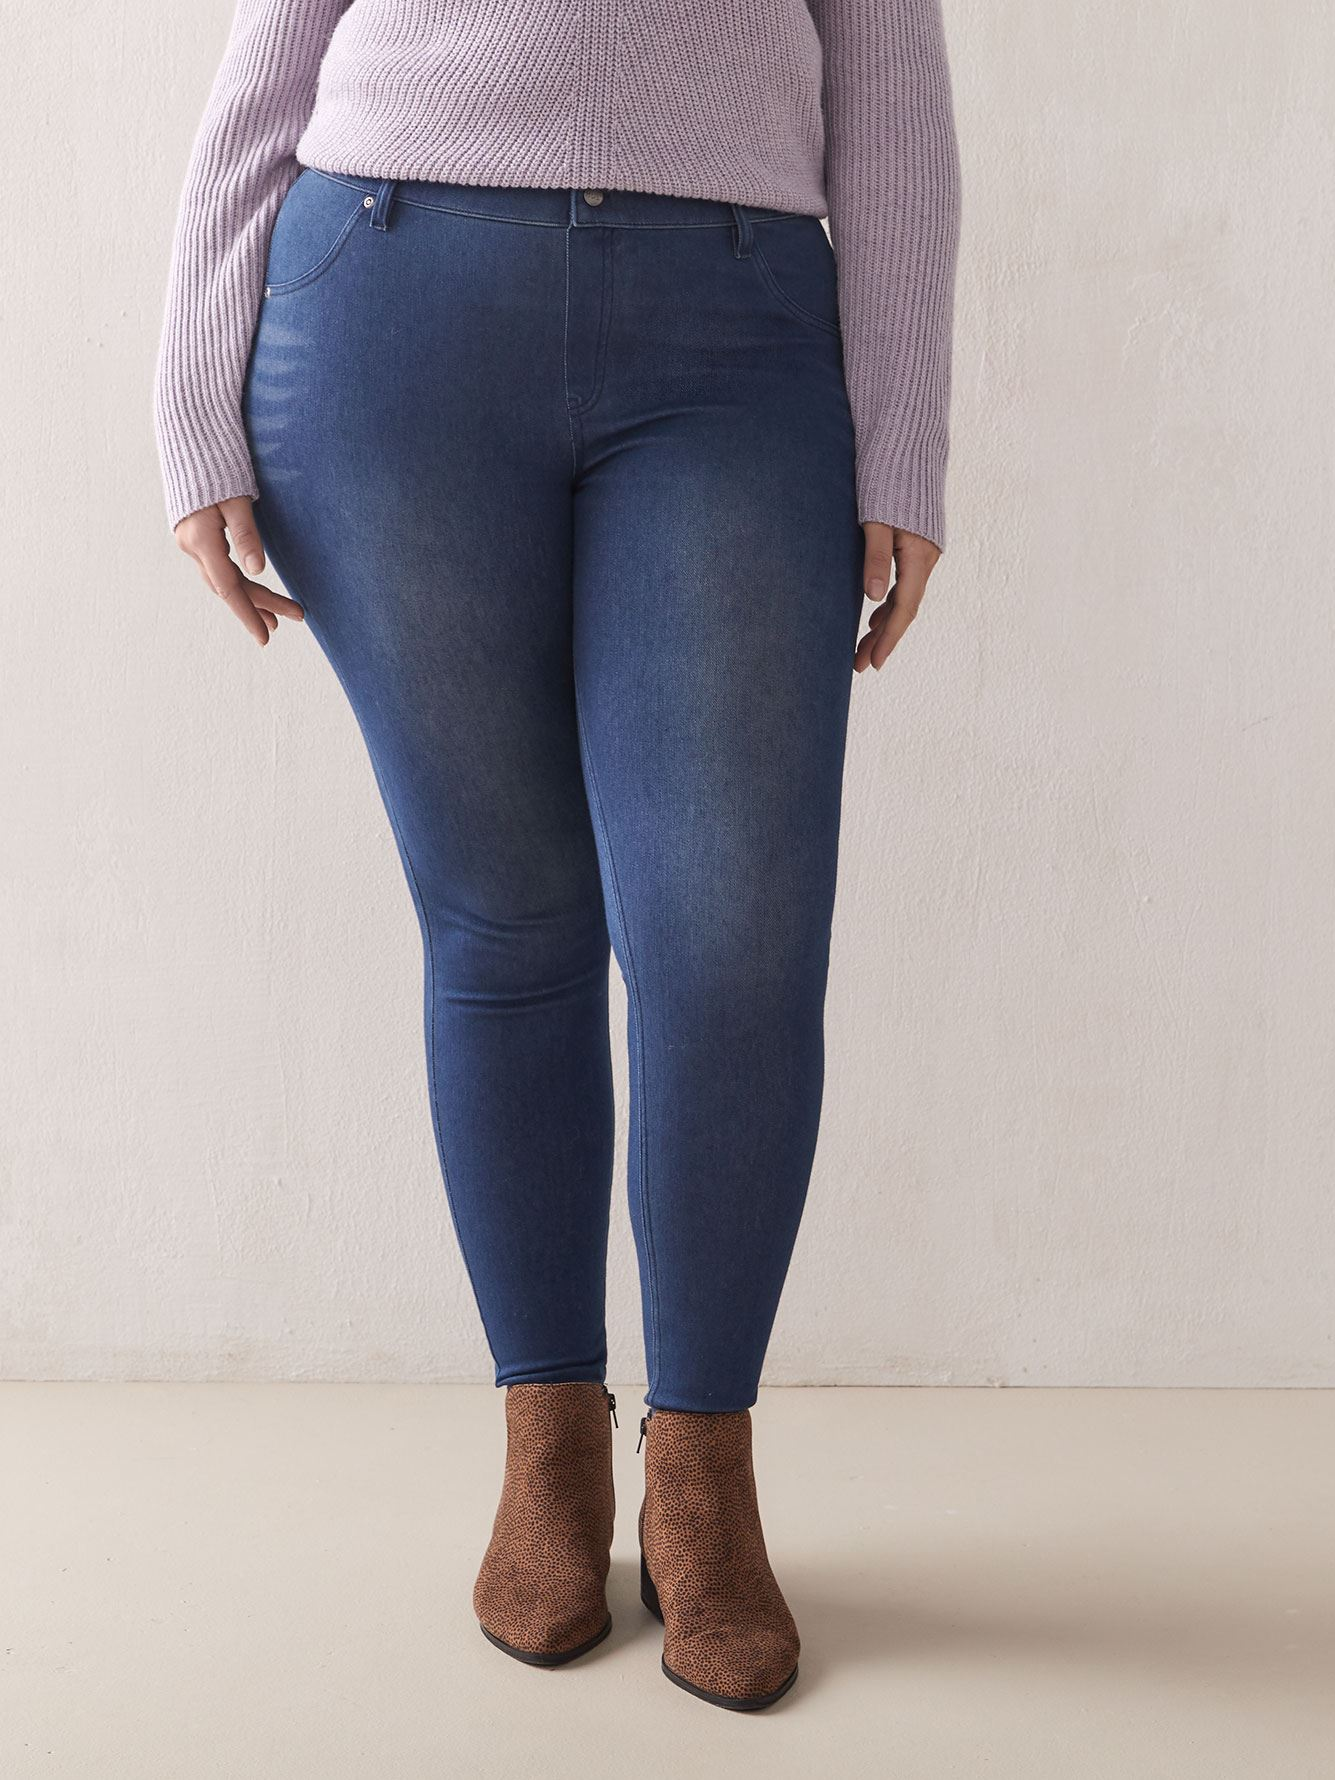 High Waist Denim Leggings - Hue